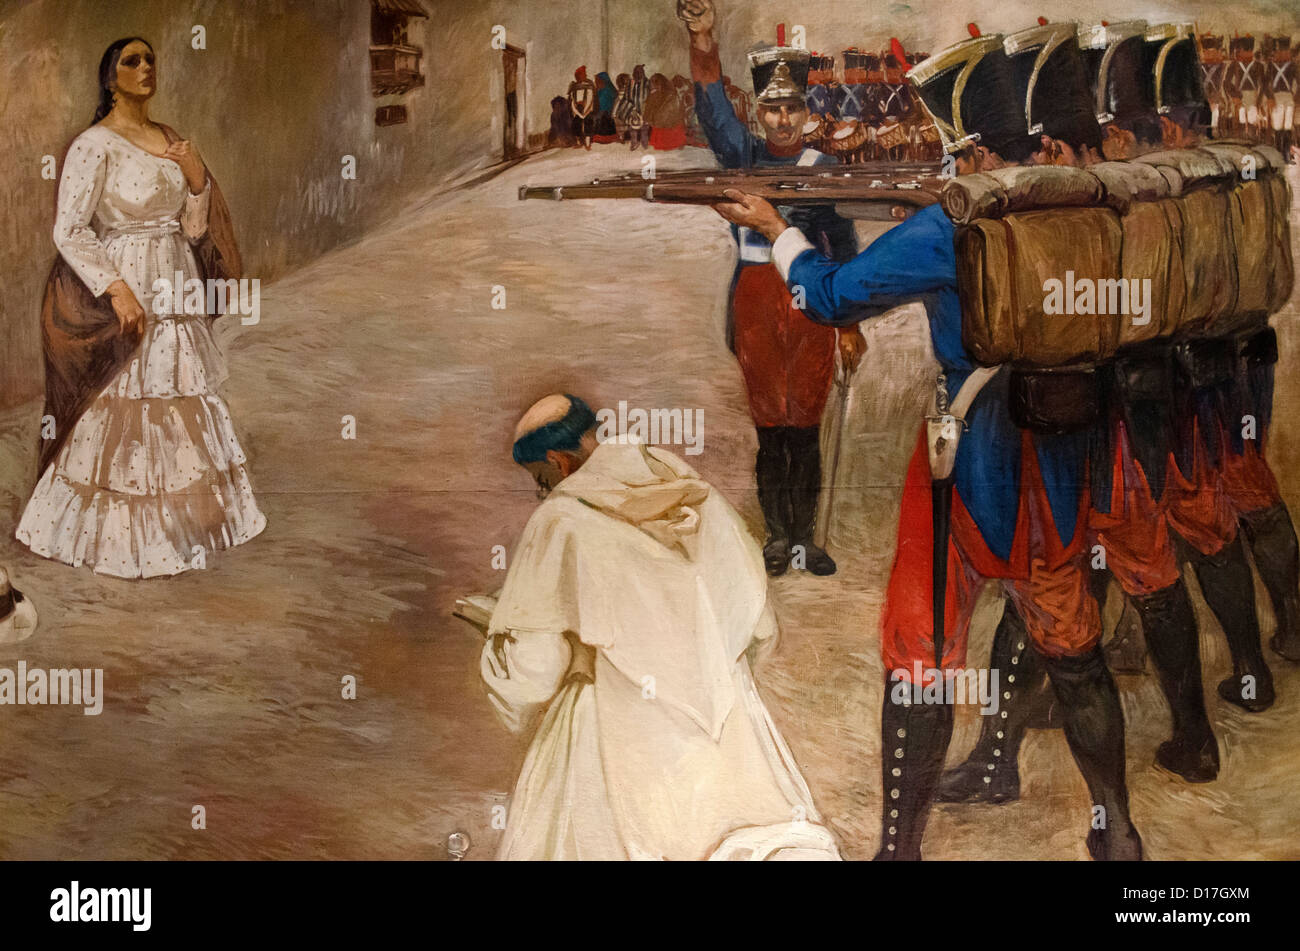 Shooting of María Parado de Bellido 1761-1822 Heroin by Peruvian independence - Stock Image